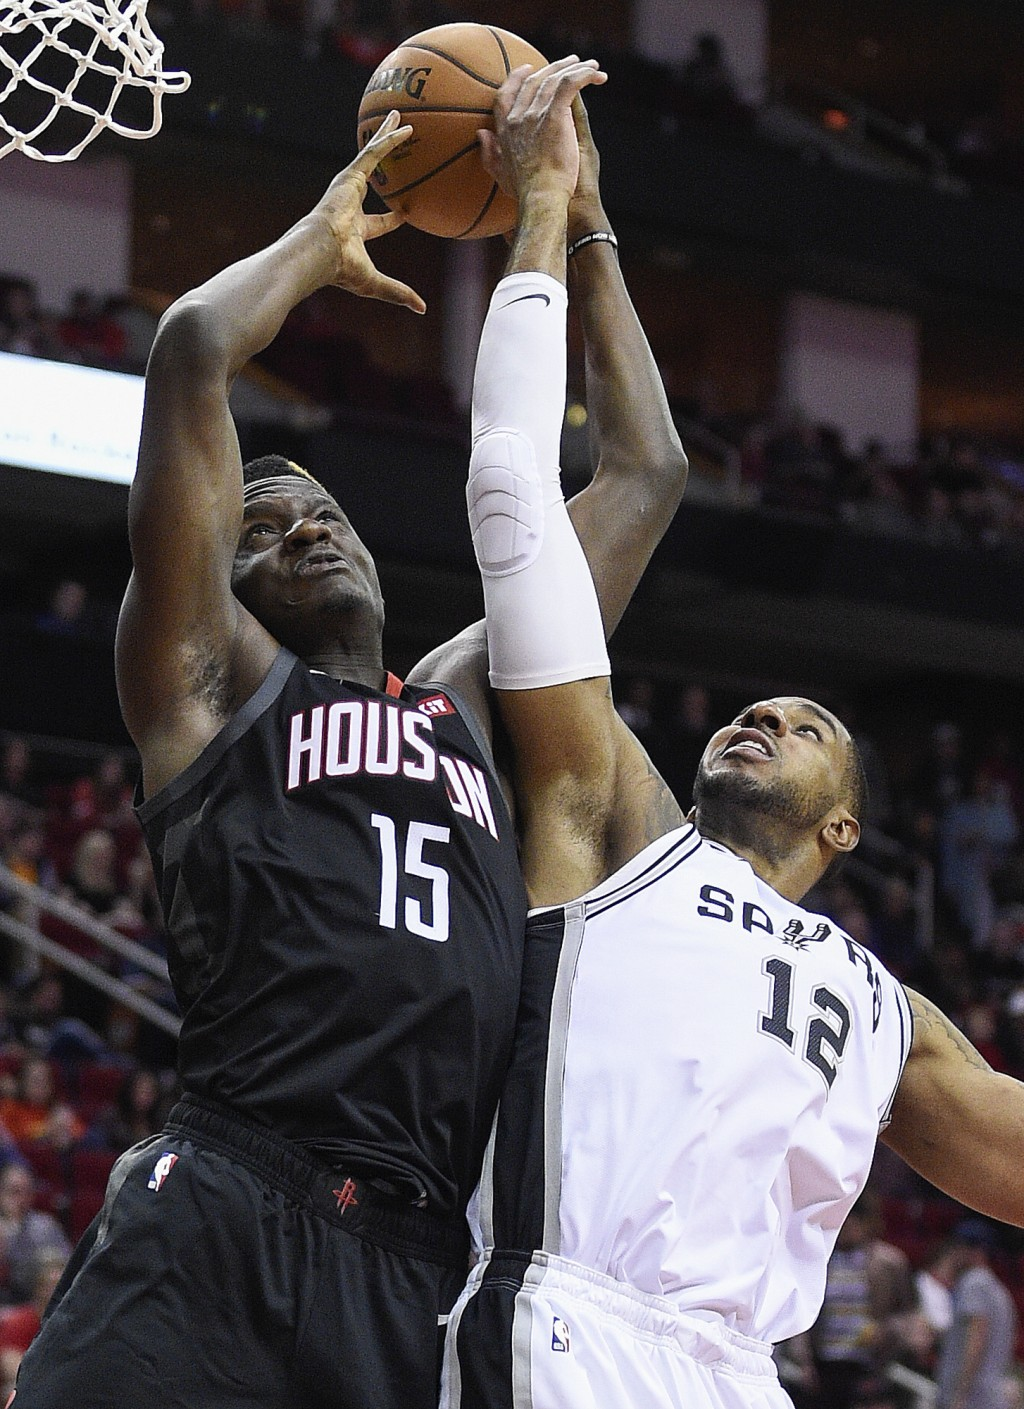 Houston Rockets center Clint Capela (15) and San Antonio Spurs forward LaMarcus Aldridge vie for a rebound during the first half of an NBA basketball ...